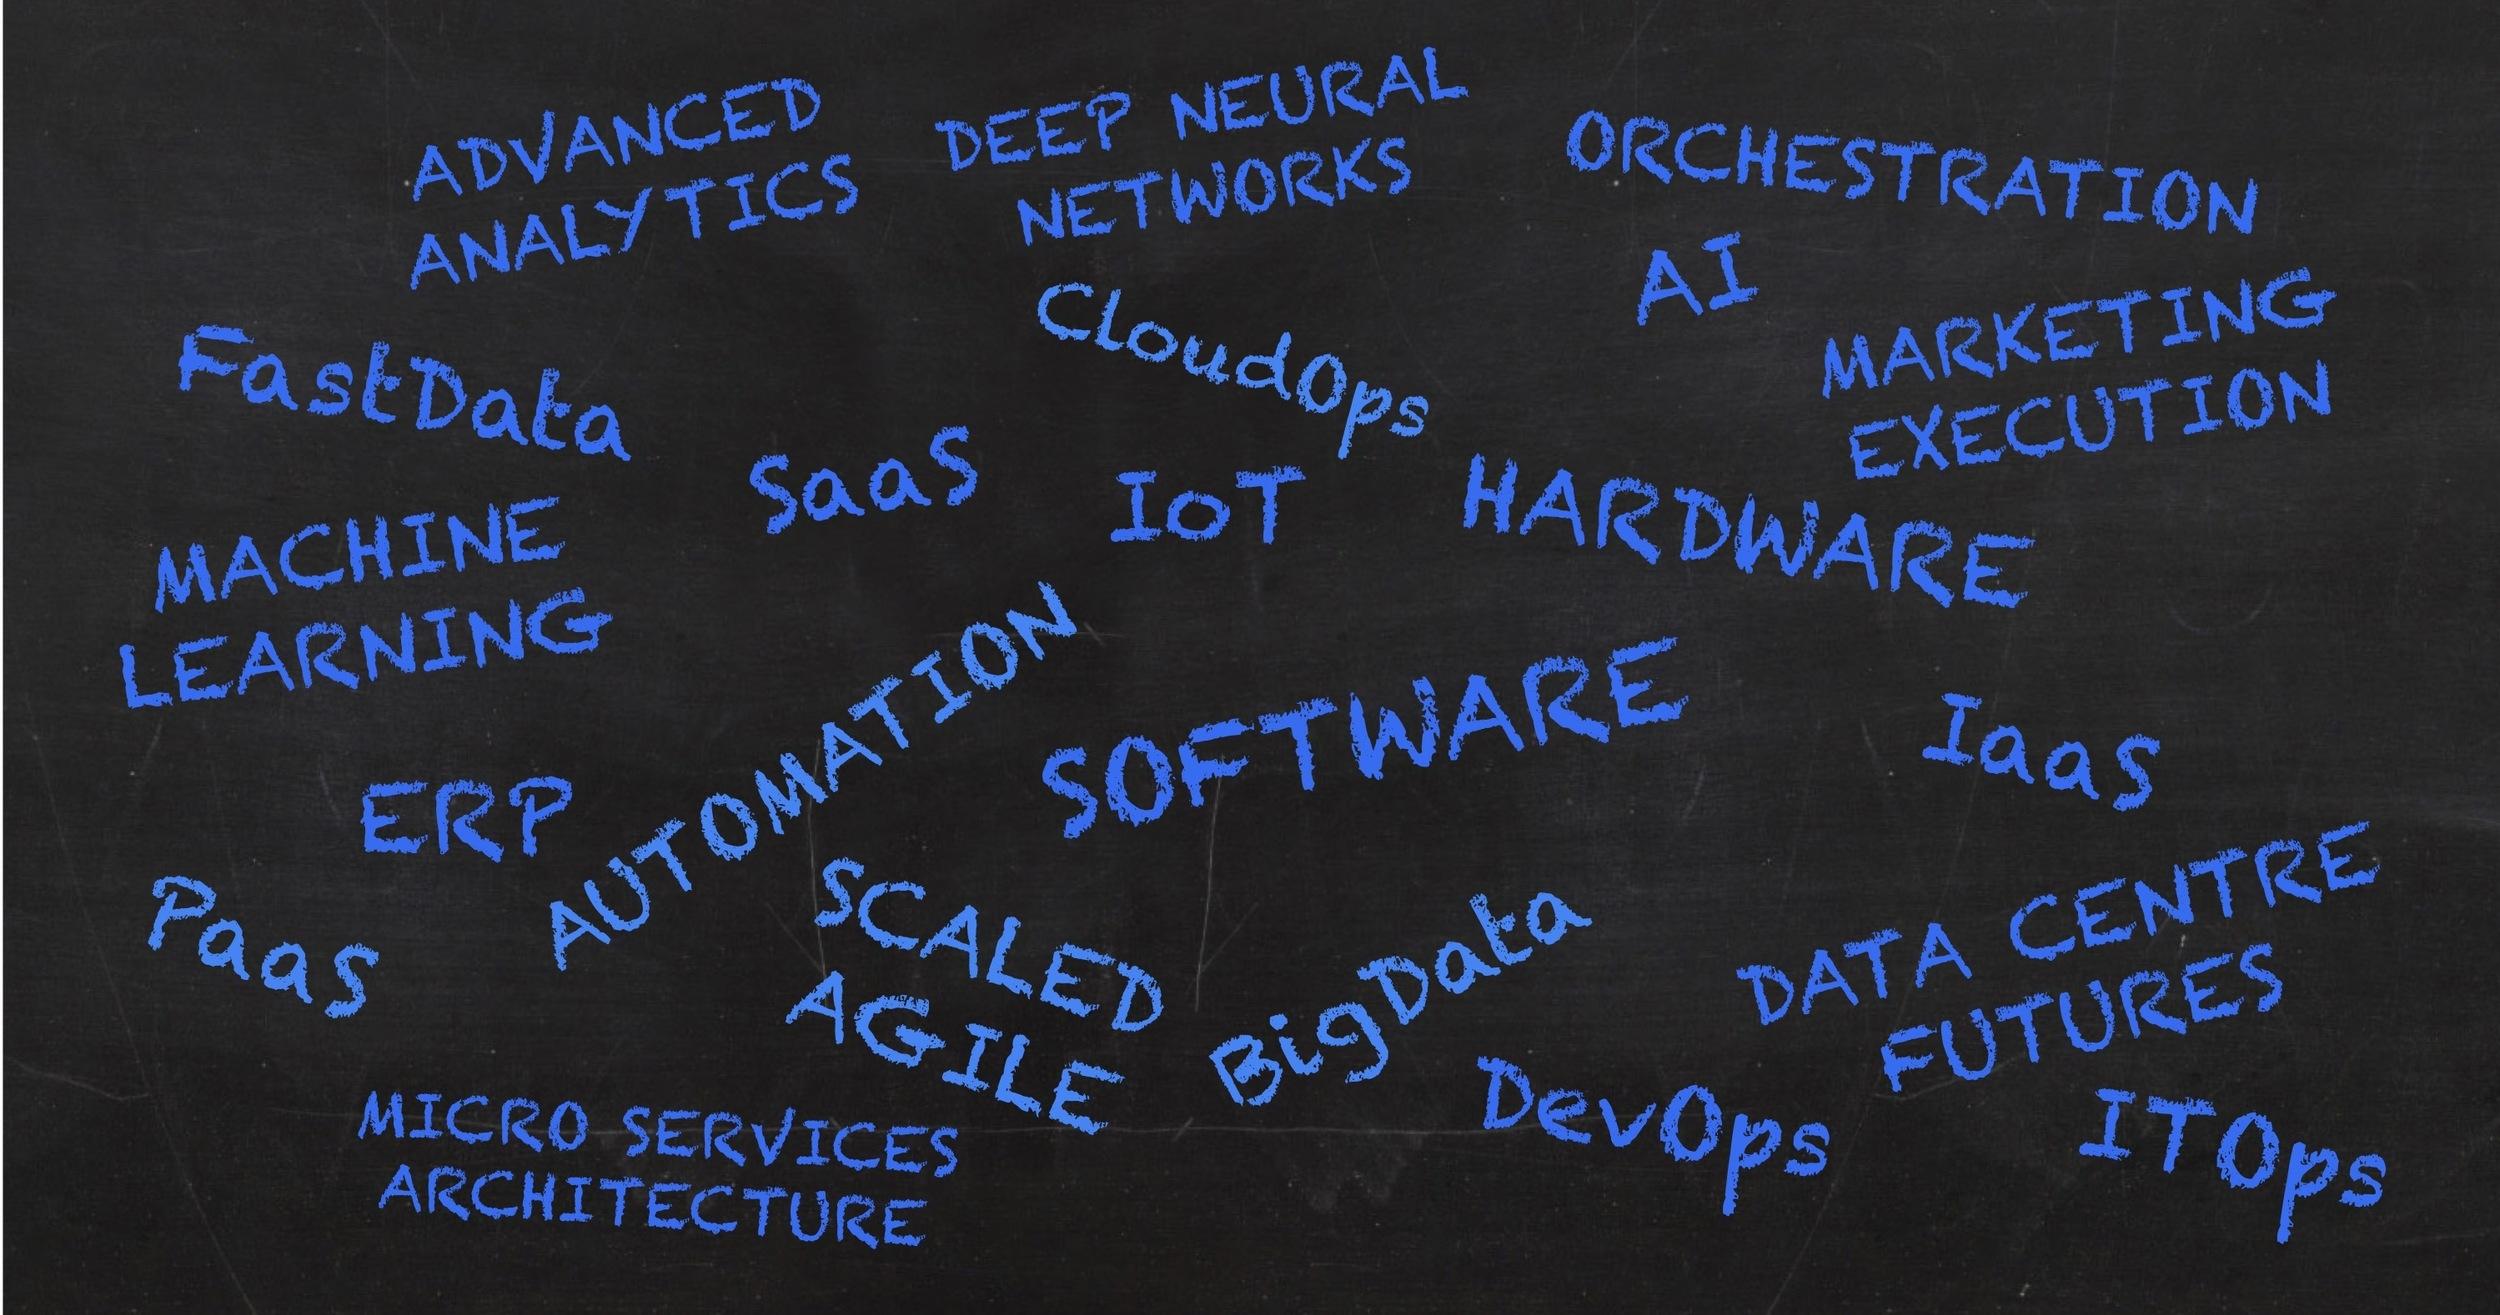 ARCHITECTURE, SCALED AGILE, DEVOPS, ITOPS, cloud, IOT, MACHINE LEARNING, ai, neural networks, big data,automation, ITPA, dcso.